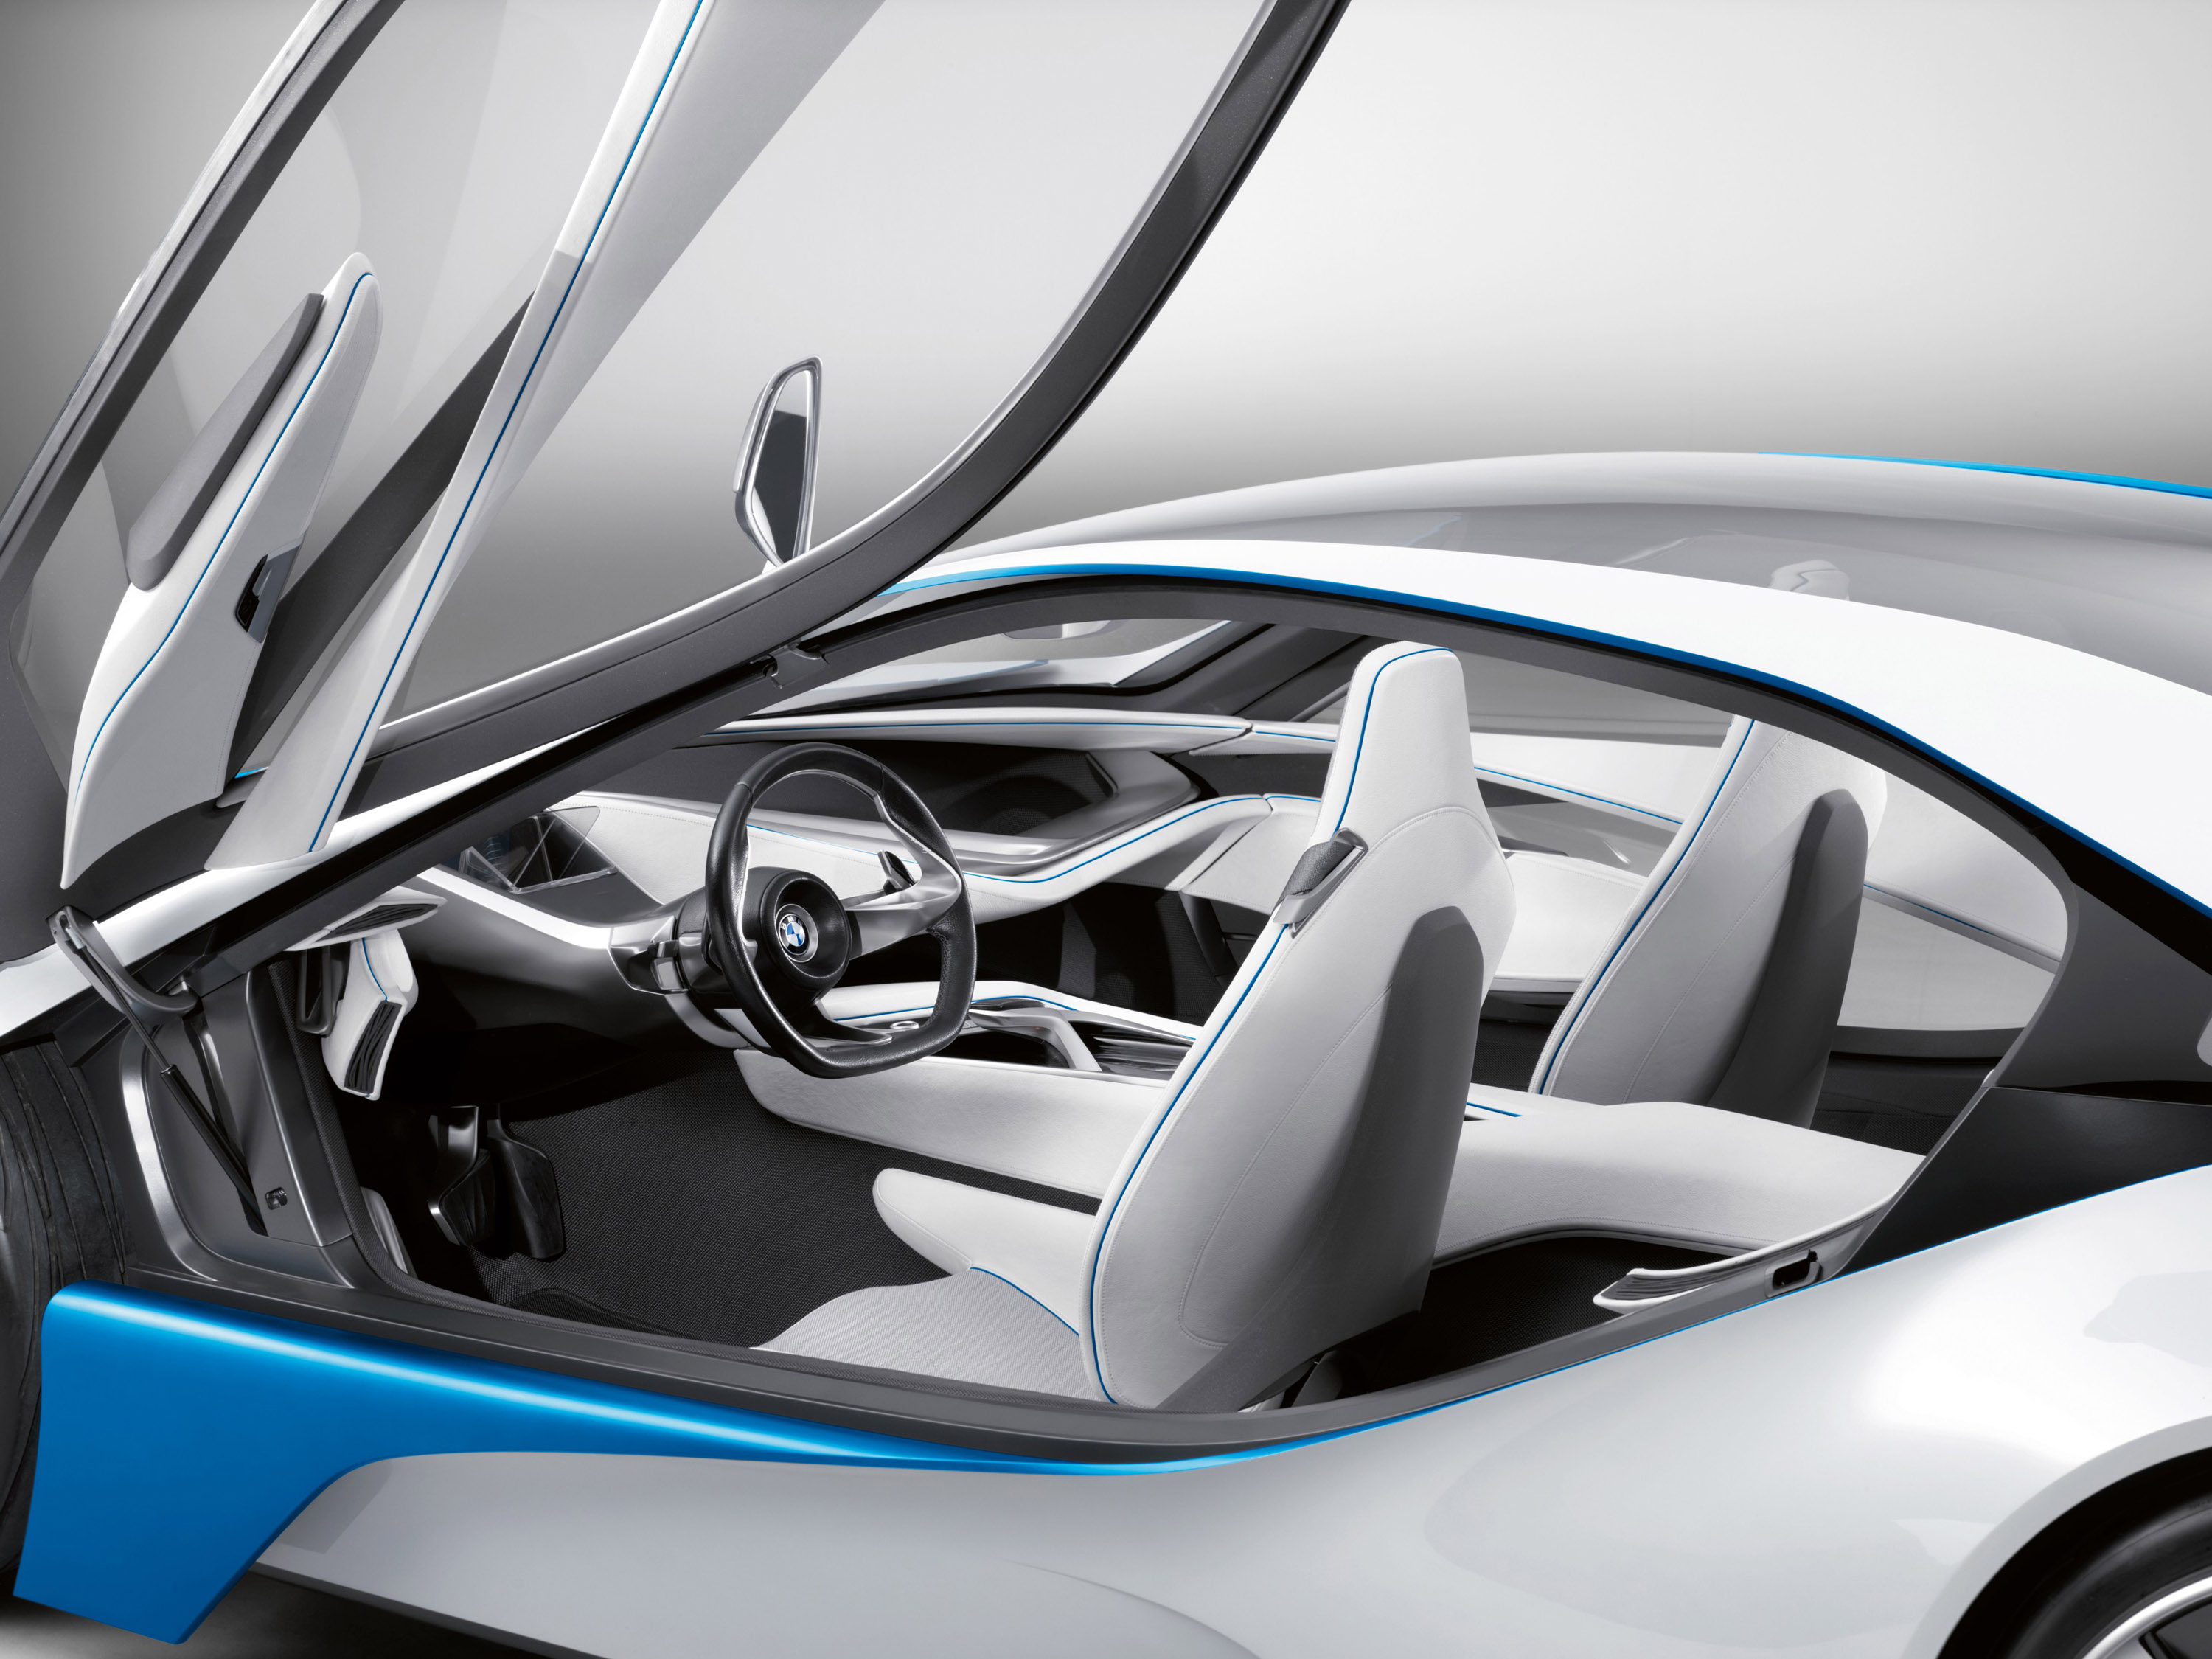 BMW Vision EfficientDynamics Concept - Picture 25052